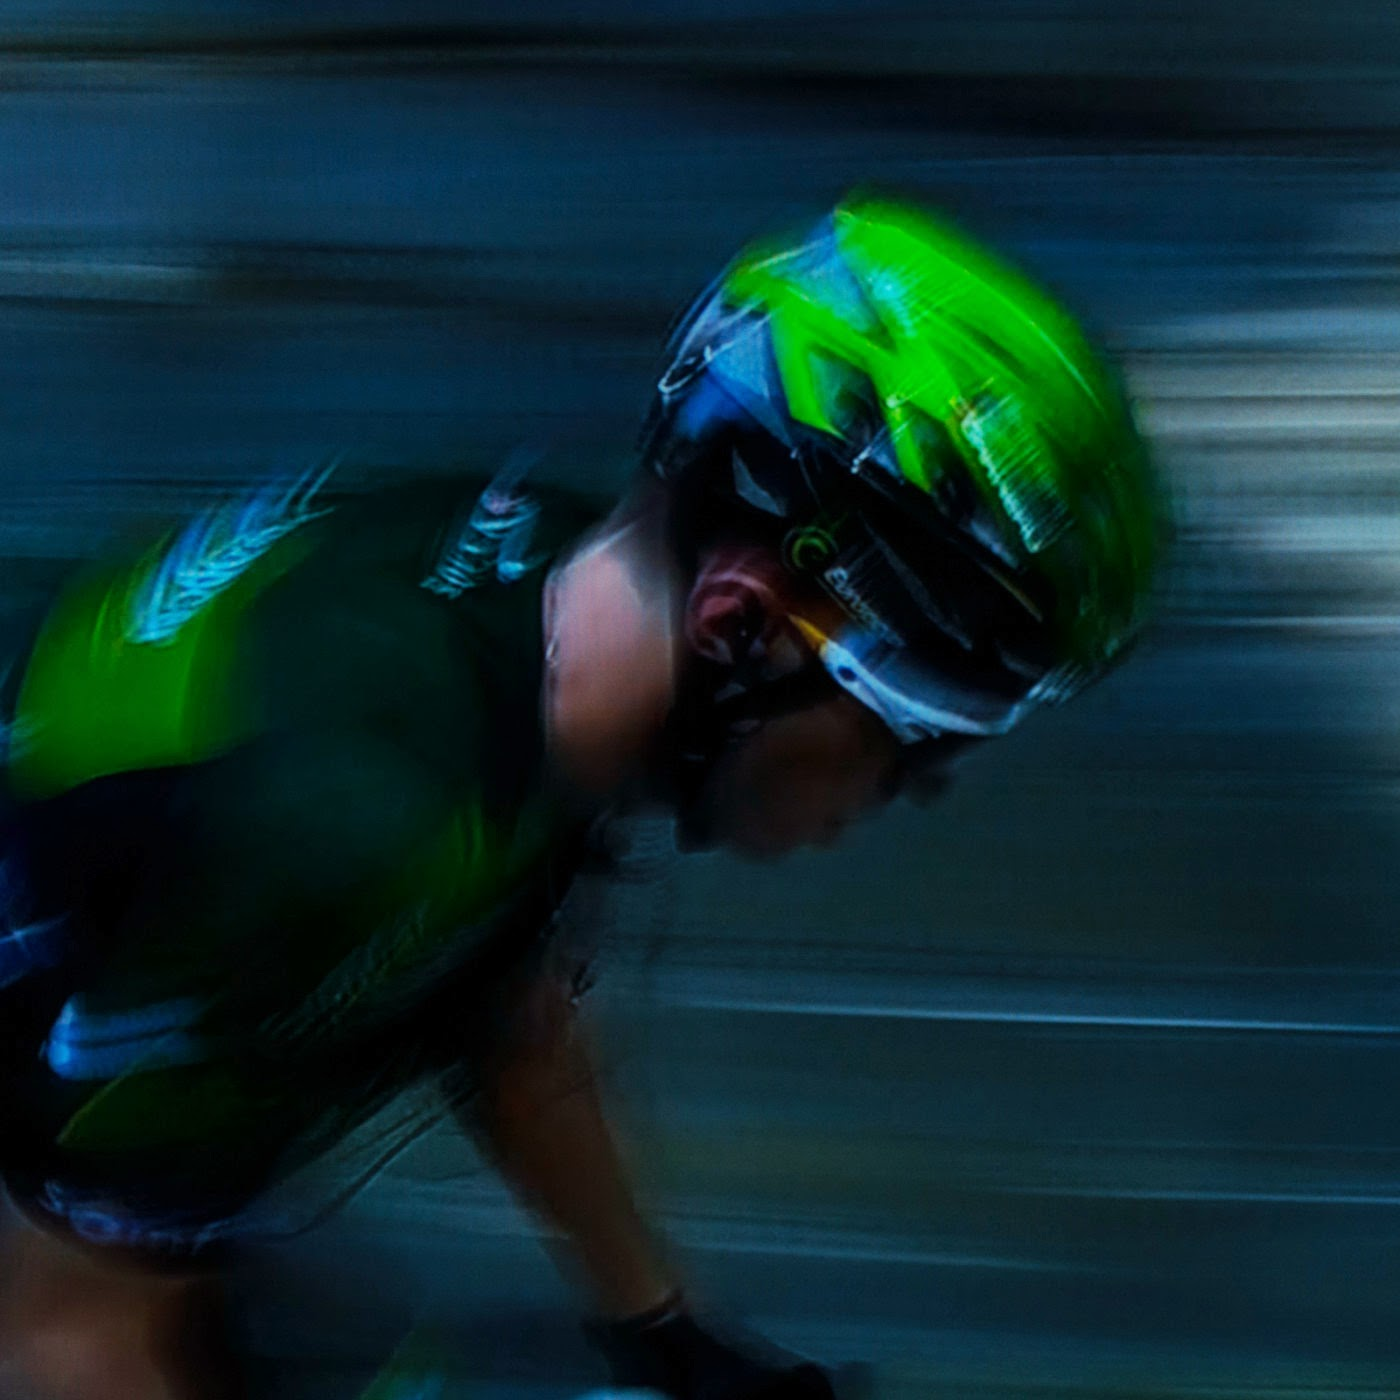 le tour, motion blur, blur, abstract, abstraction, tim macauley, photographic art, you won't see this at MoMA, appropriation, found imagery, le tour 2014, tv footage, portrait, team europcar